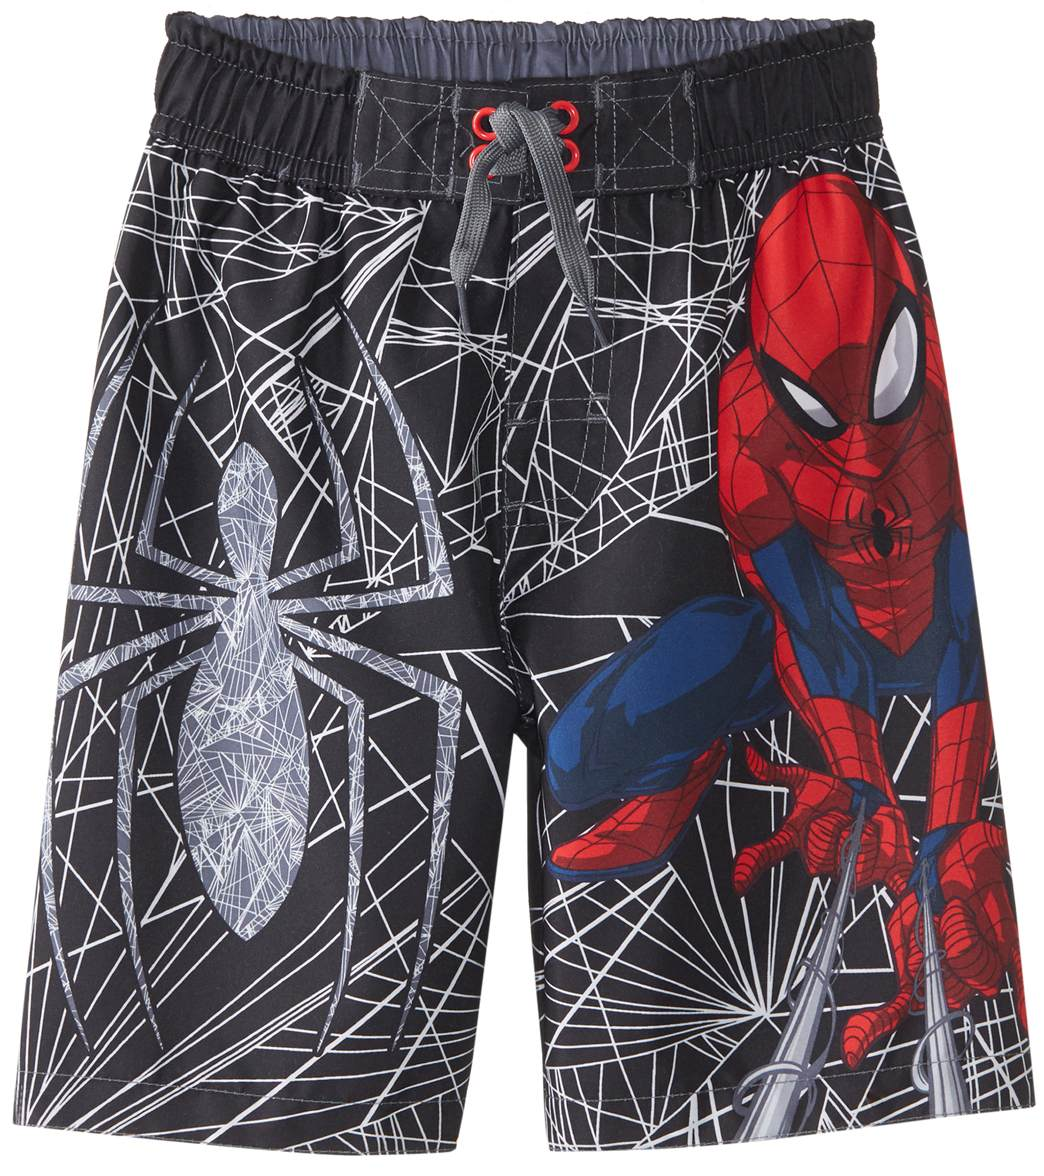 b8dc8ed4d4 Disney Boys' Spiderman Swim Trunk (Little Kid) at SwimOutlet.com